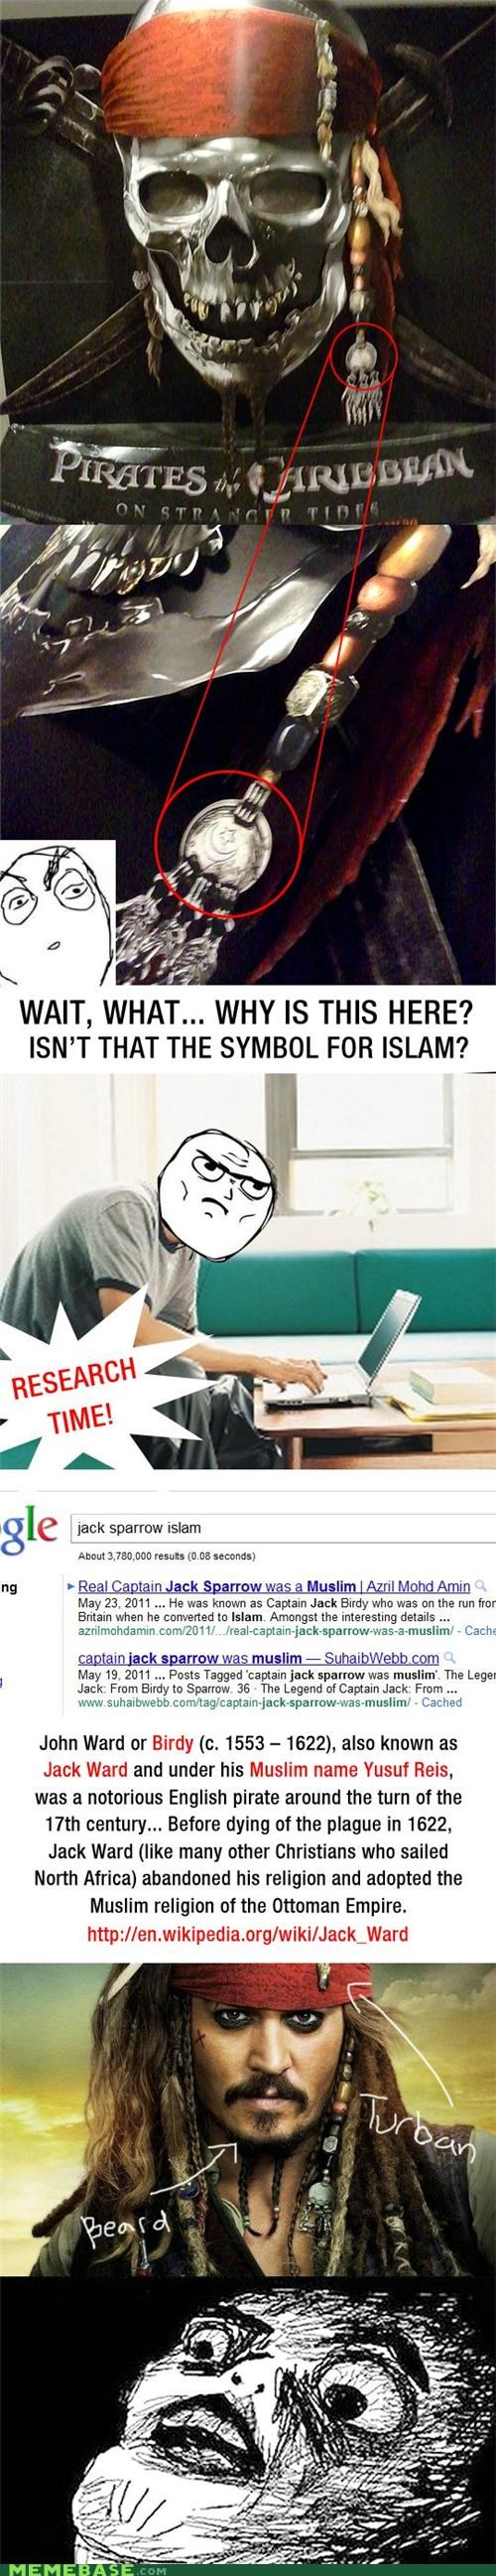 best of week,islam,jack,movies,Pirates of the Caribbean,Rage Comics,research,sparrow